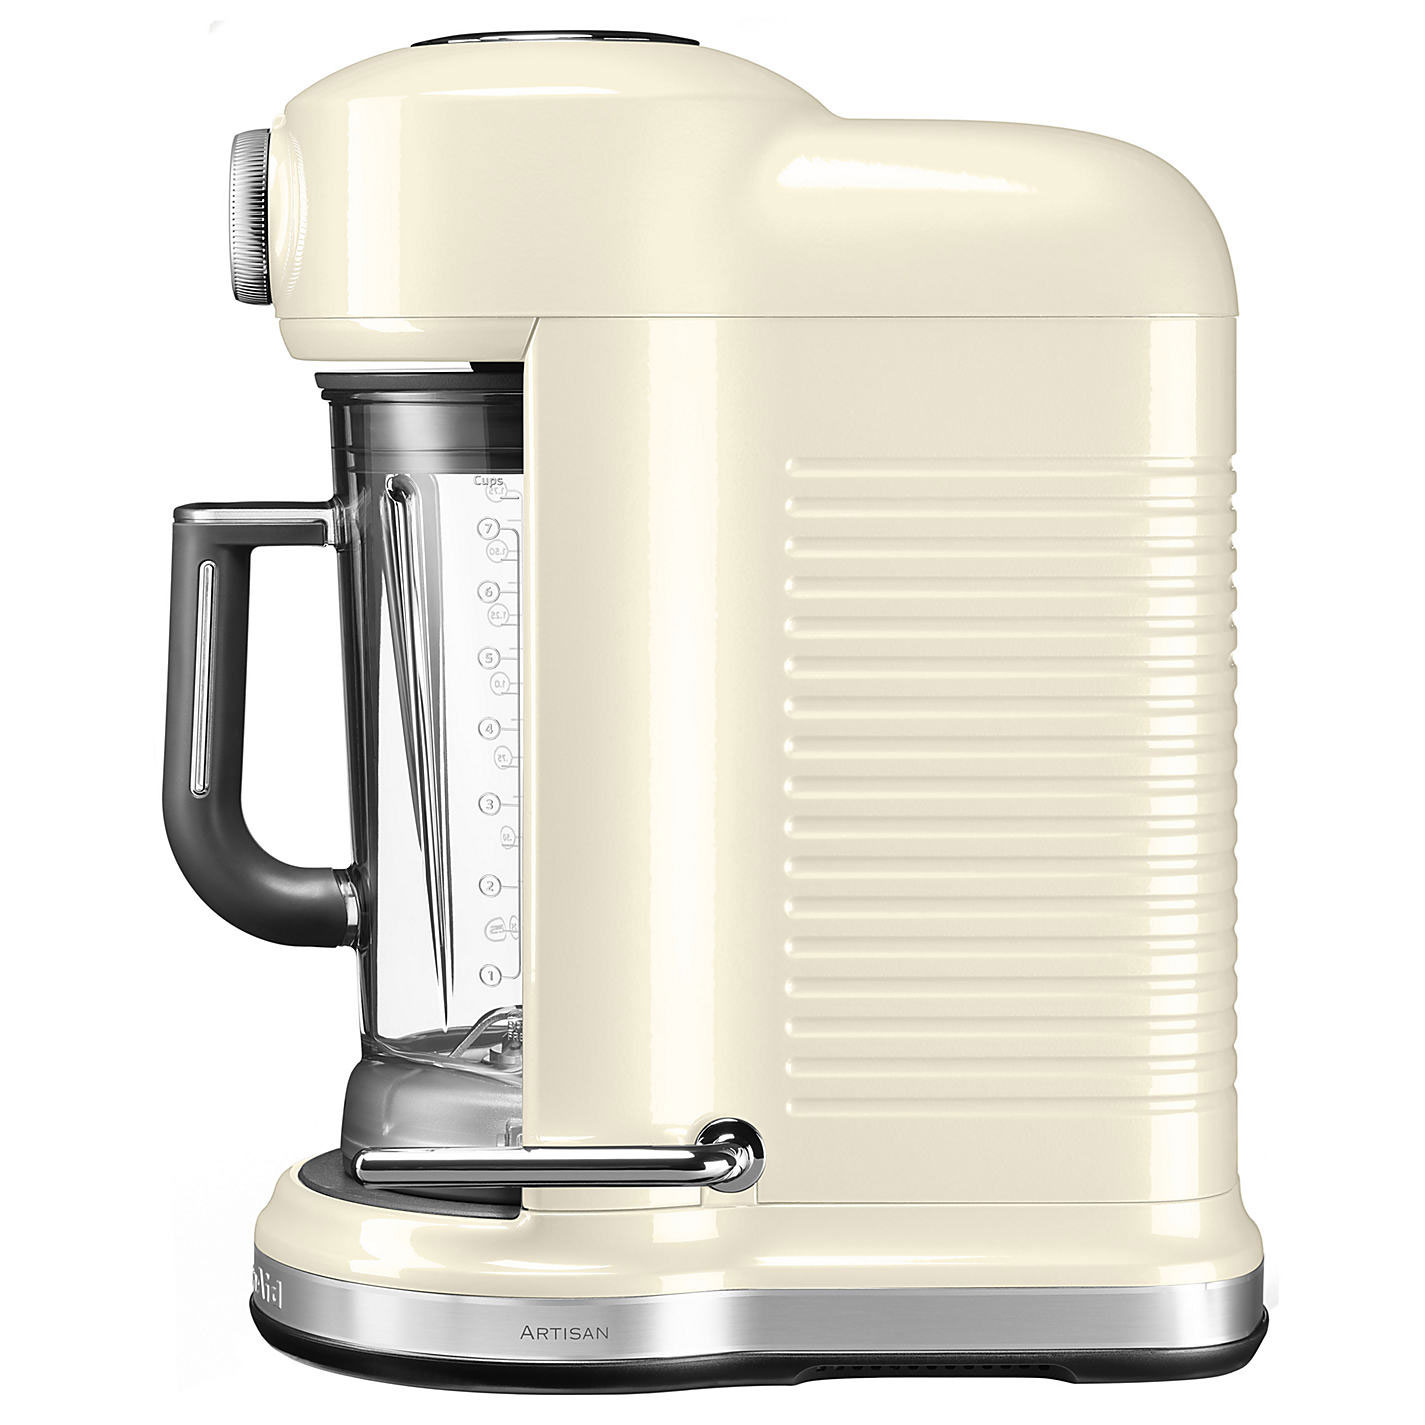 KitchenAid Artisan Magnetic Drive Blender Almond Cream KSB5080BAC